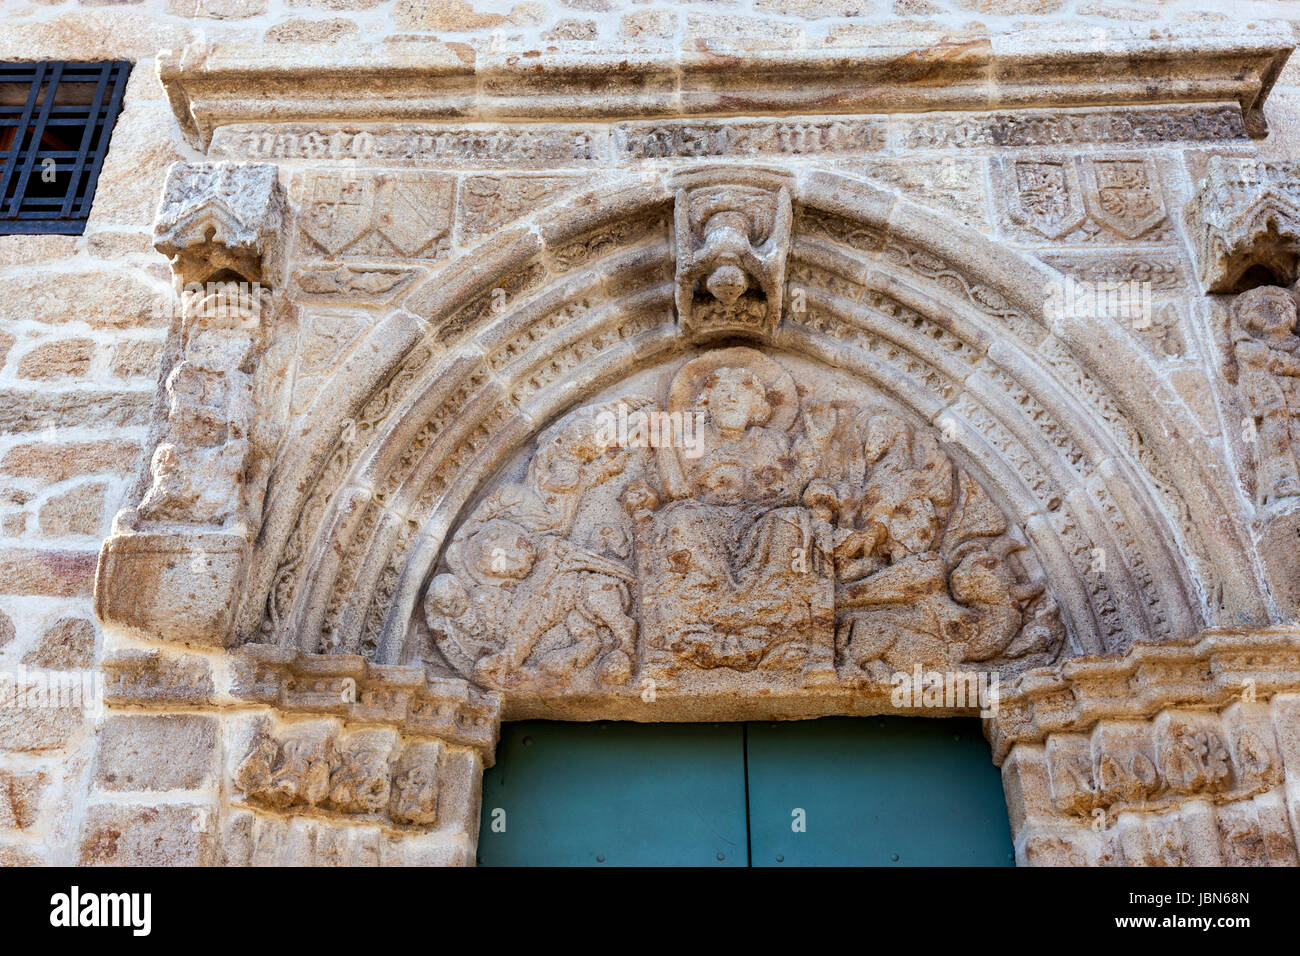 Facade of the Pilgrim hospital in Monterrey Castle, fortress and palace, Ourense province, Galicia, Spain - Stock Image